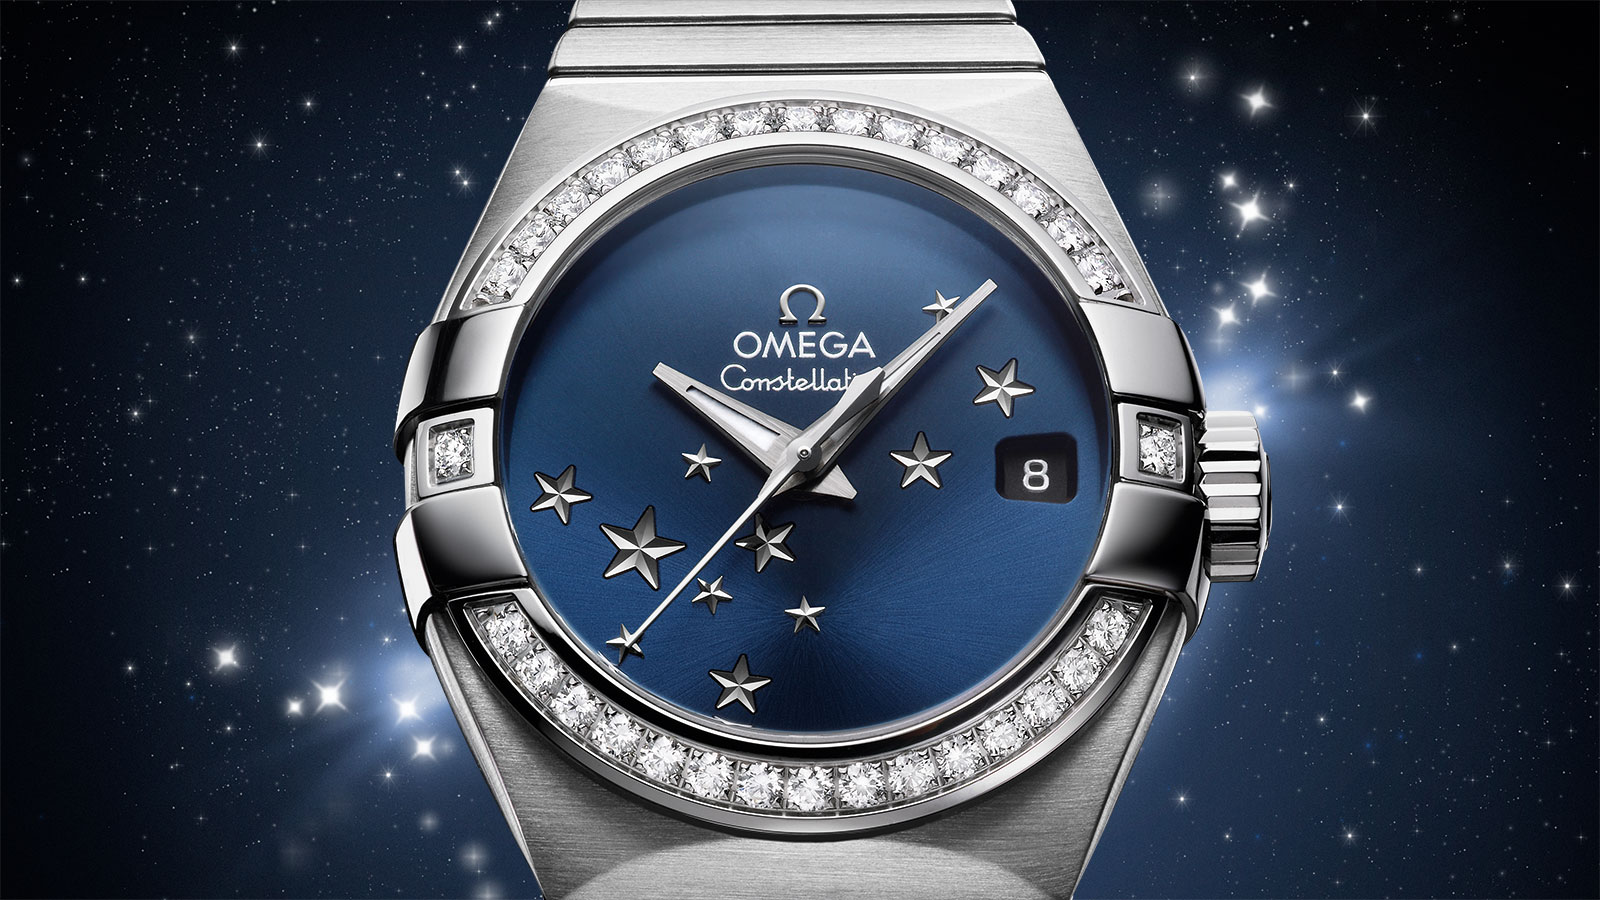 Constellation Constellation Constellation Omega Co‑Axial 27 mm Watch - 123.15.27.20.03.001